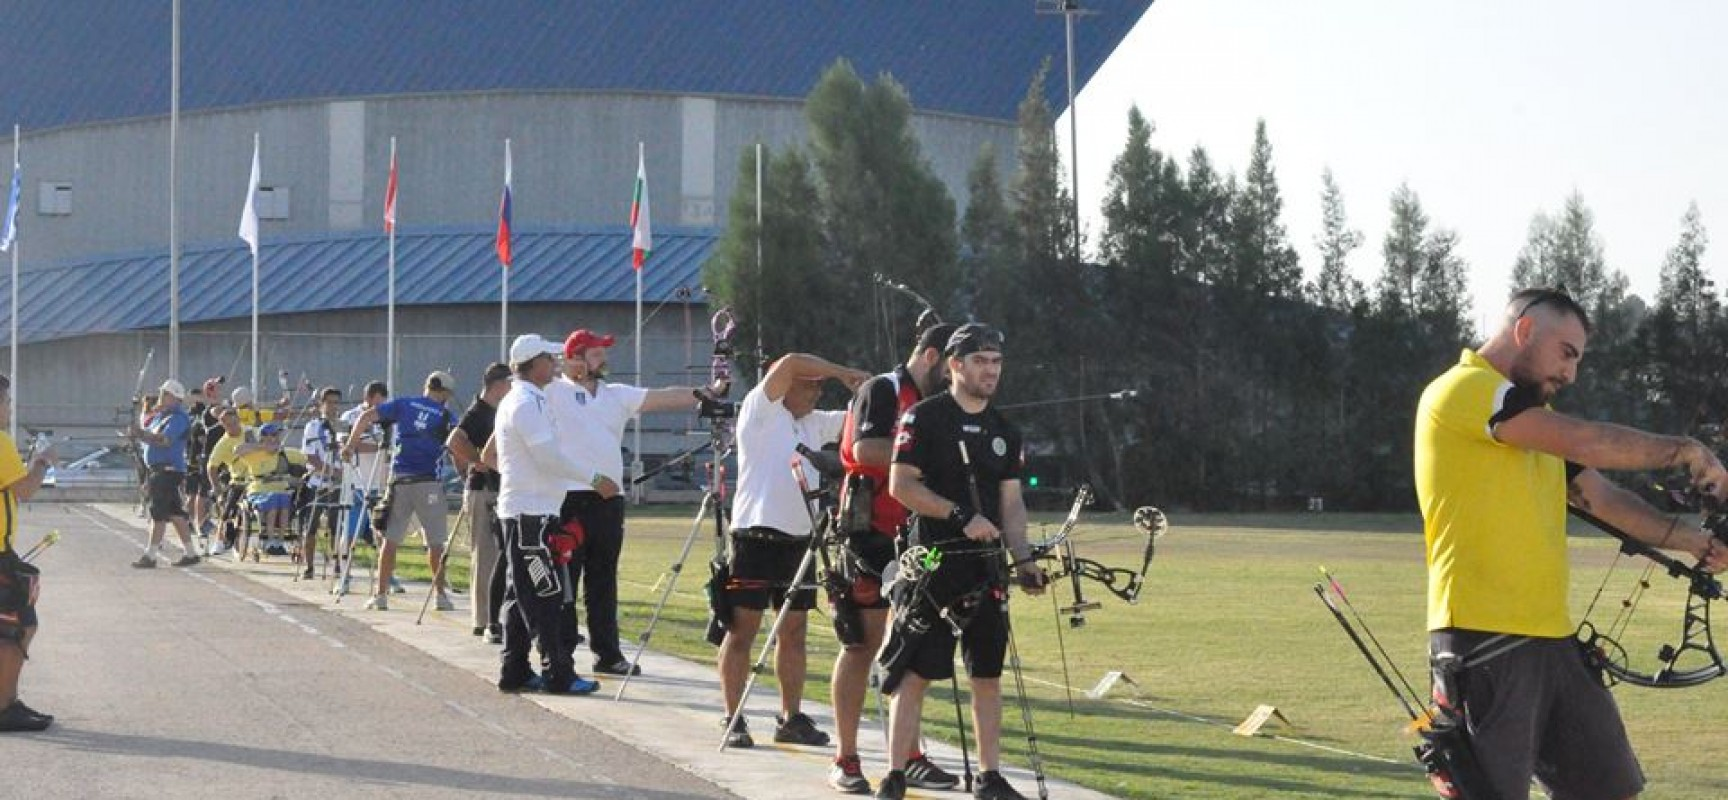 "Η ΕΘΝΙΚΗ ΜΑΣ ΟΜΑΔΑ ΣΤΟ CYPRUS INTERNATIONAL ARCHERY CUP  ""APHRODITE 2015"""